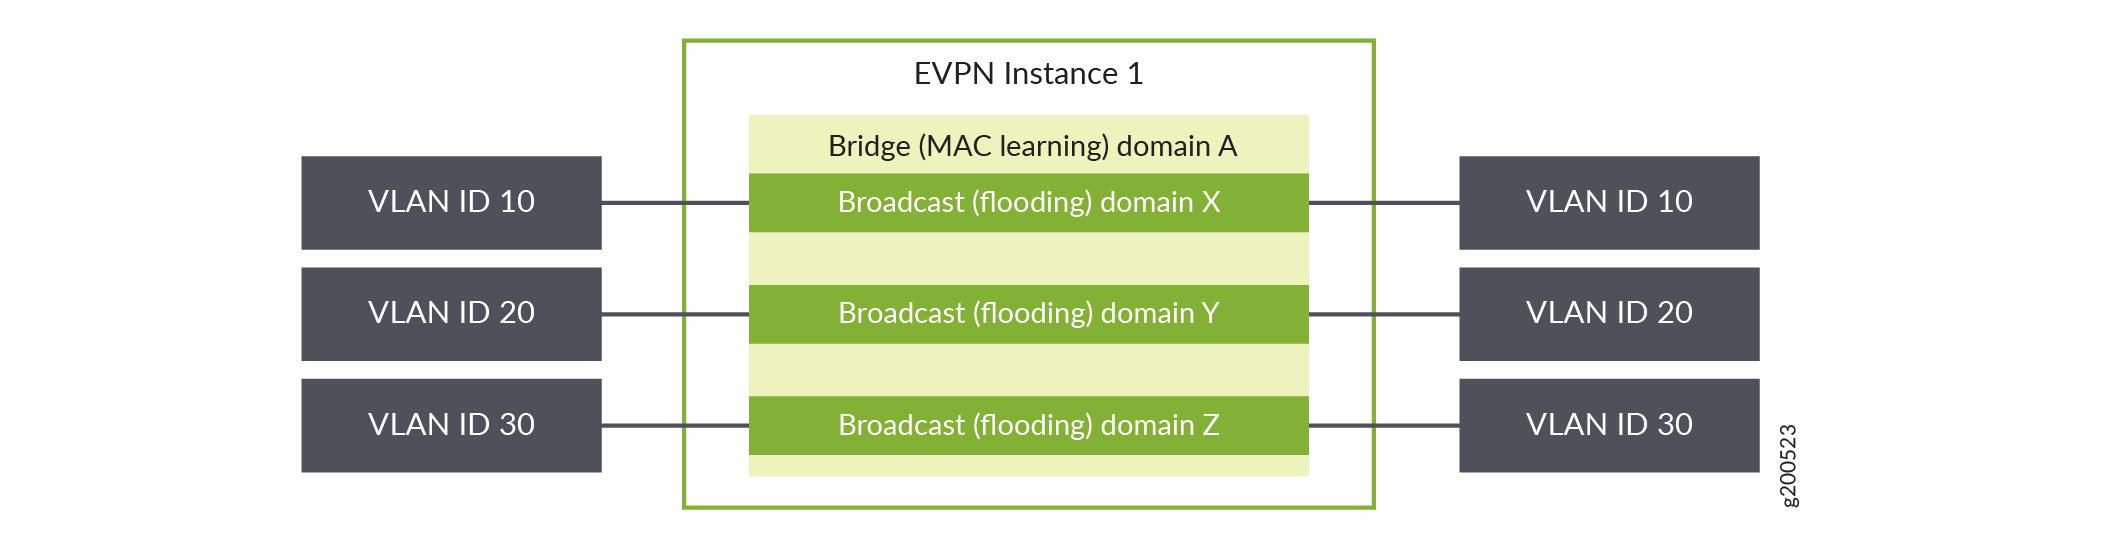 Overview of VLAN Services for EVPN - TechLibrary - Juniper Networks